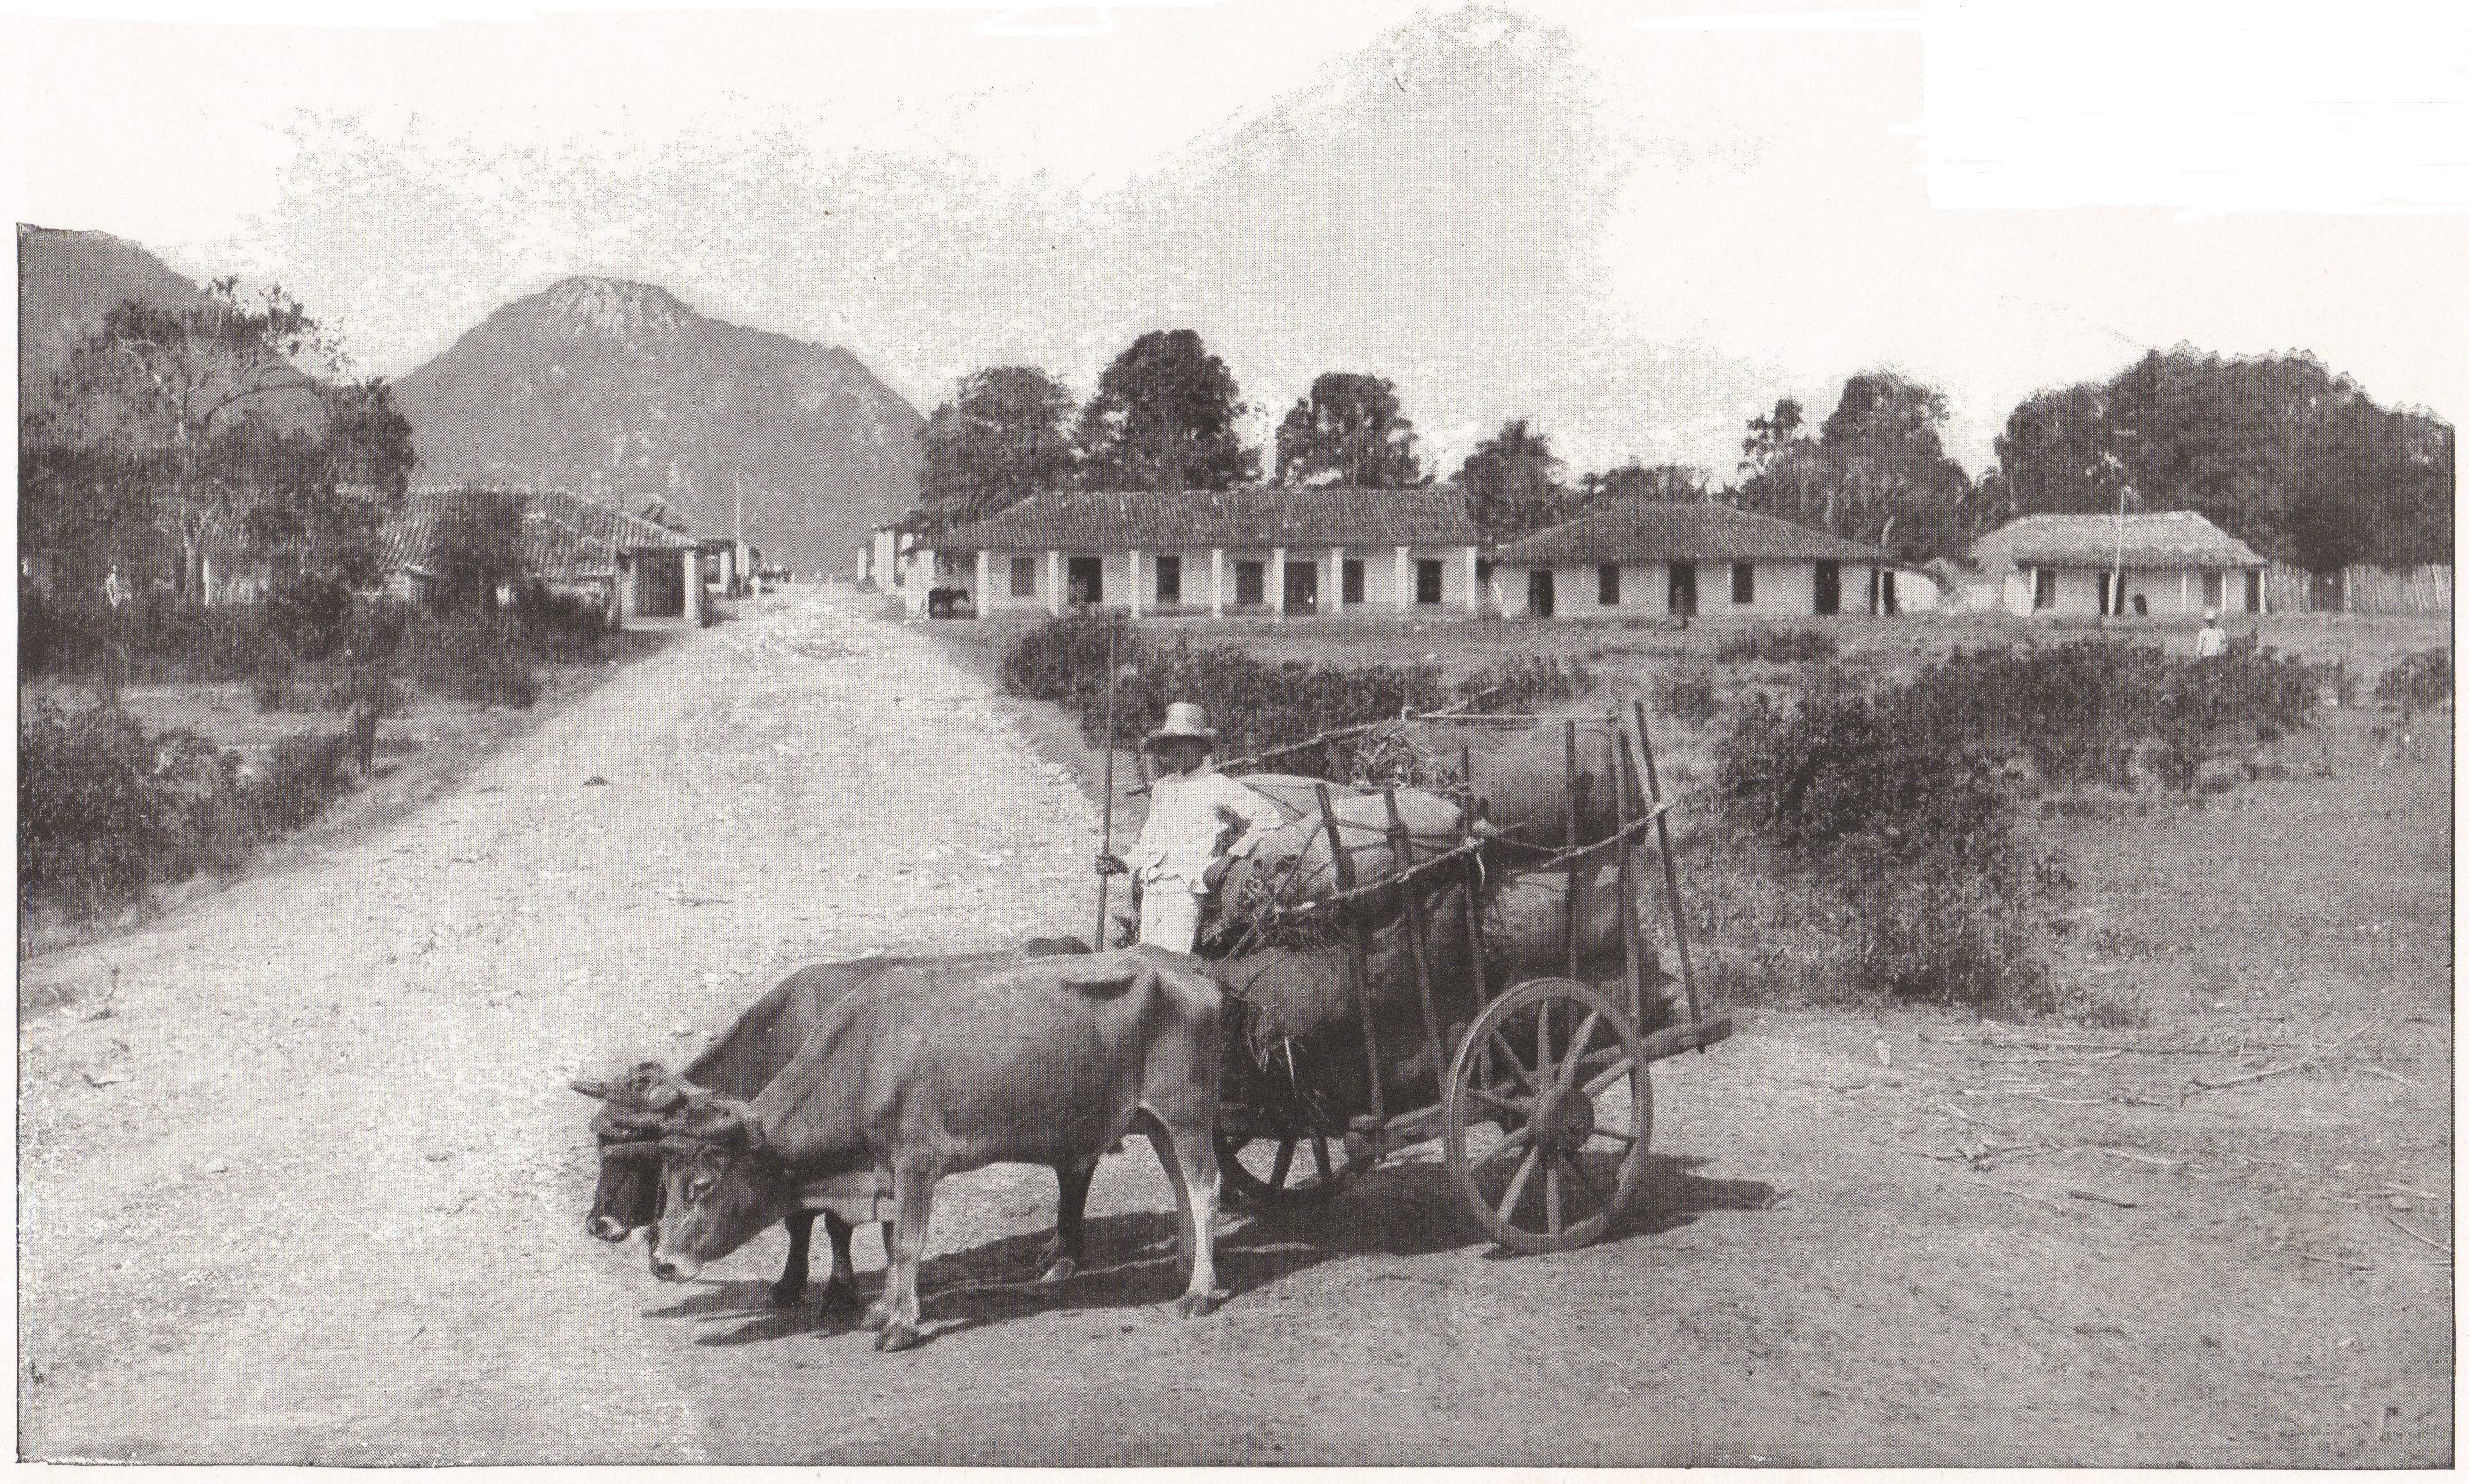 Cart Pulled by a Pair of Oxen, Cuba (1898)